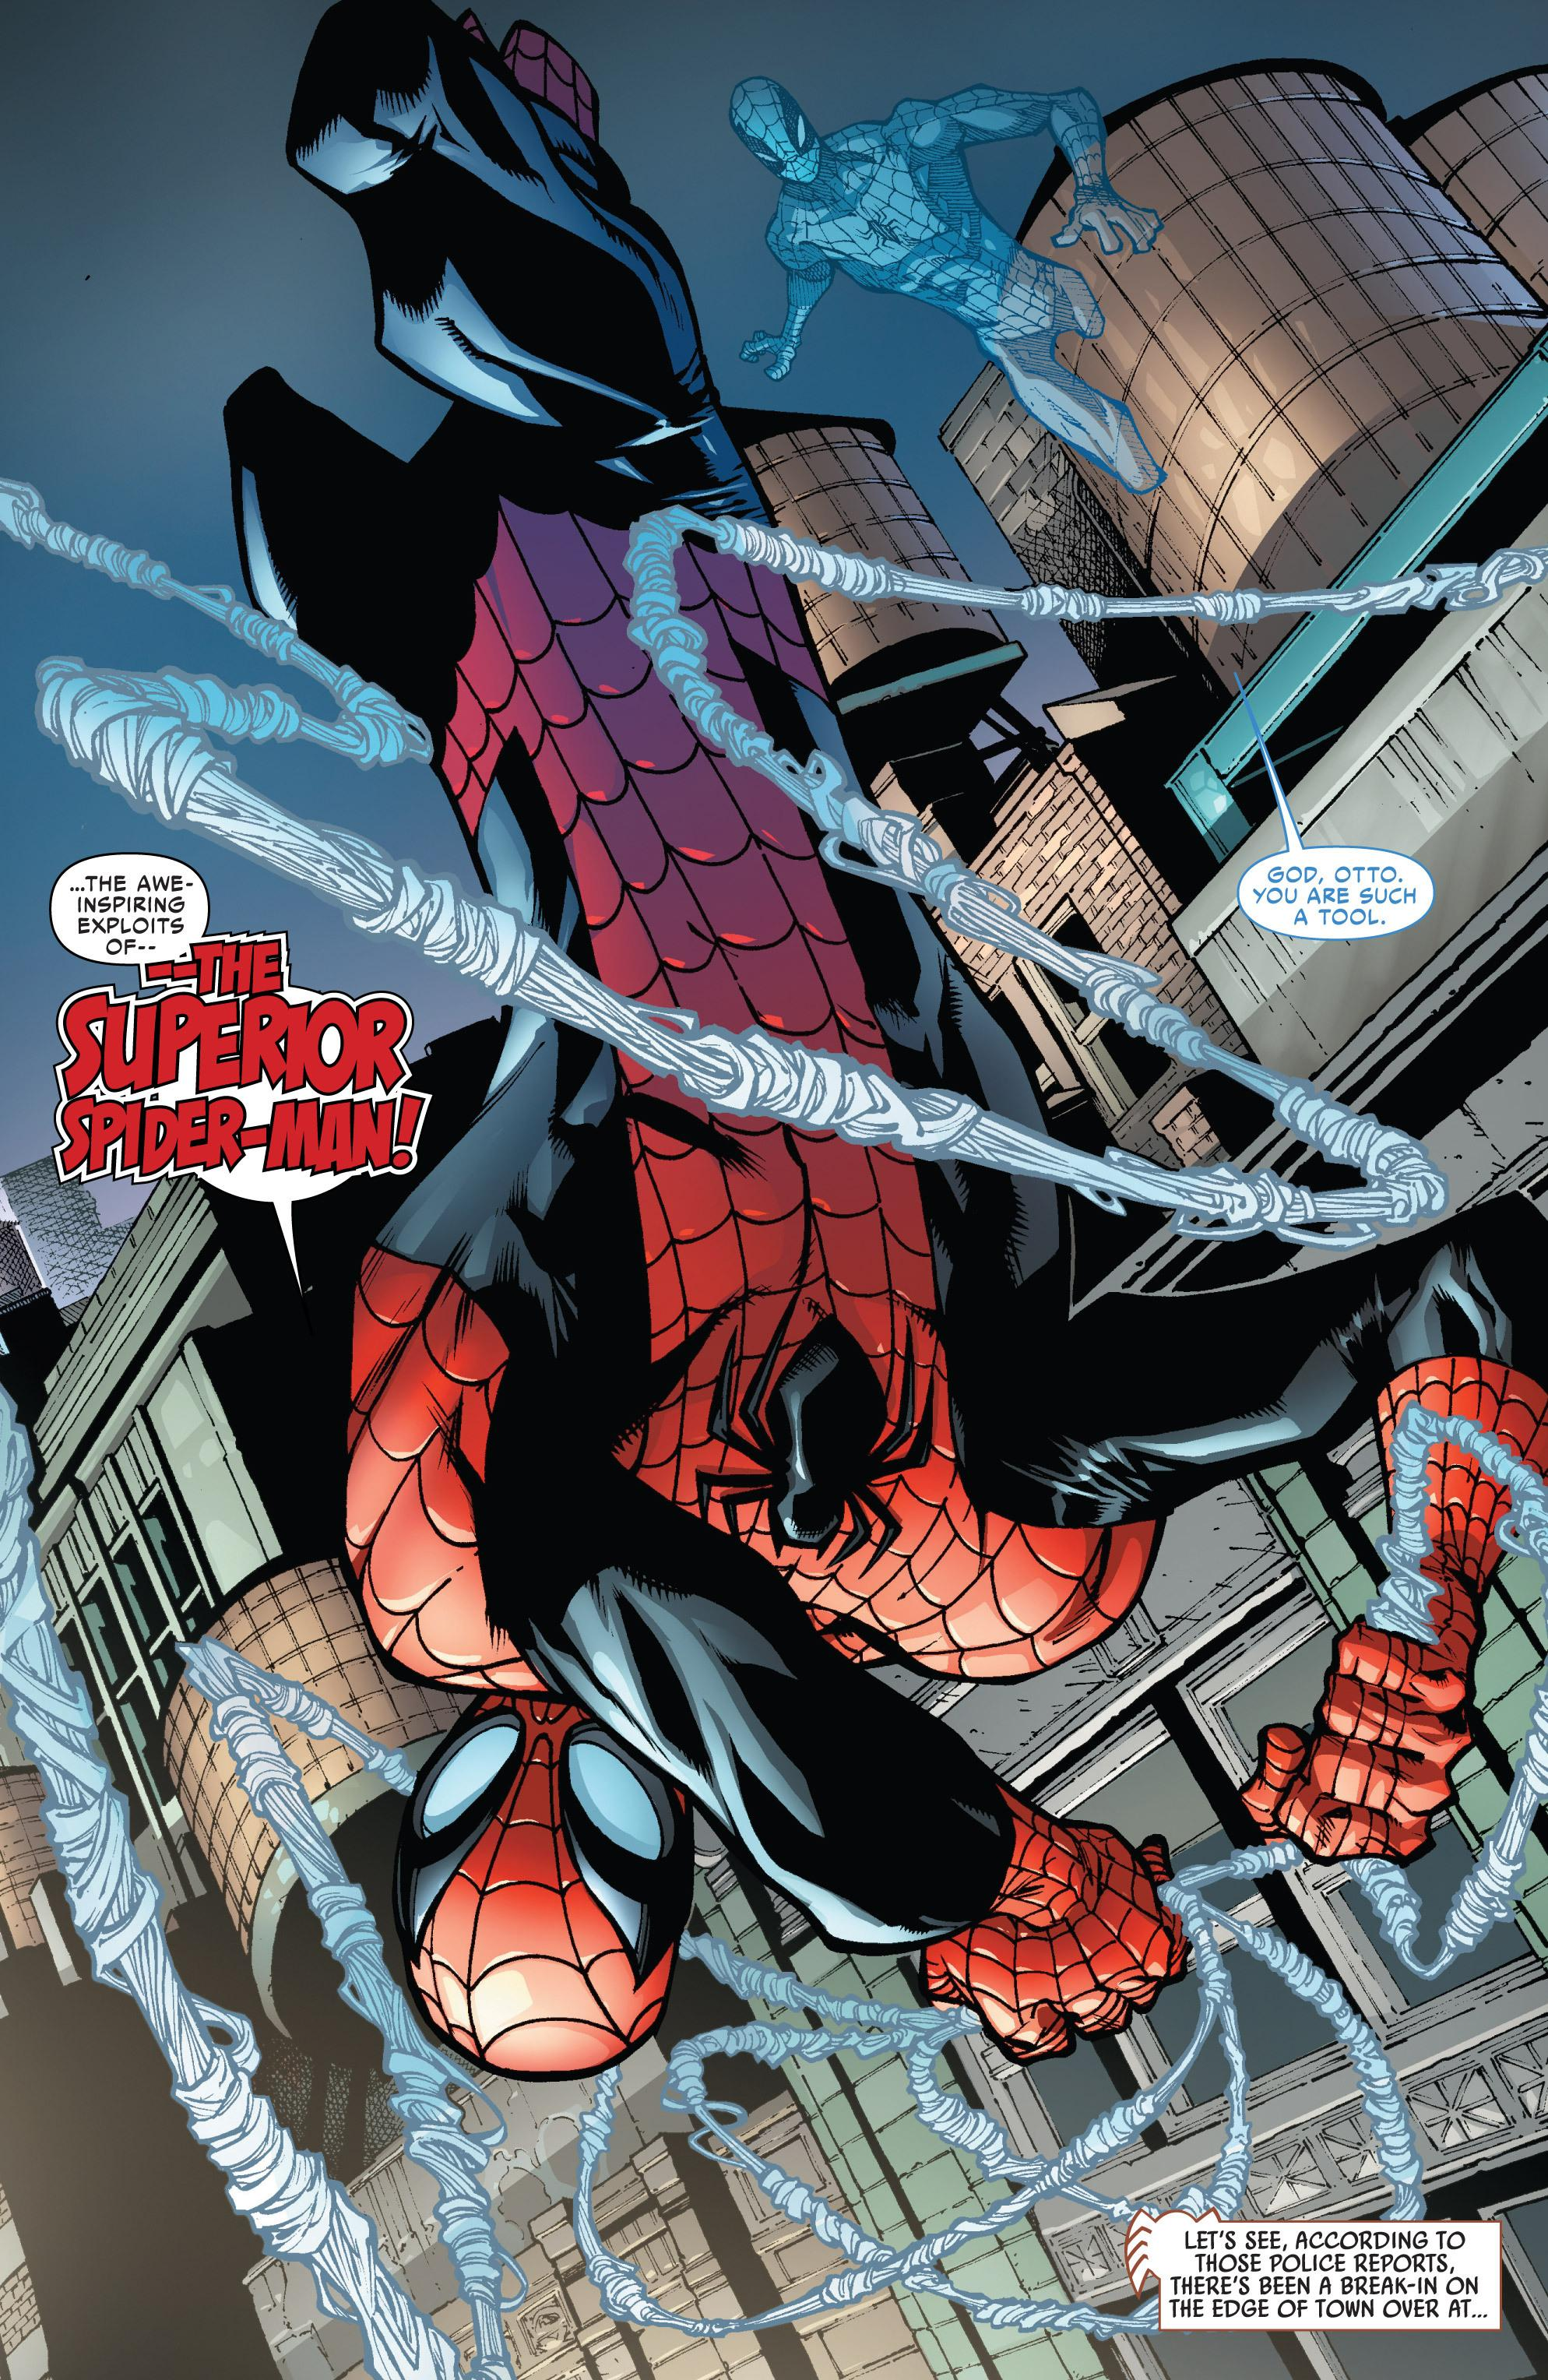 The Superior Spider-Man A Troubled Mind review